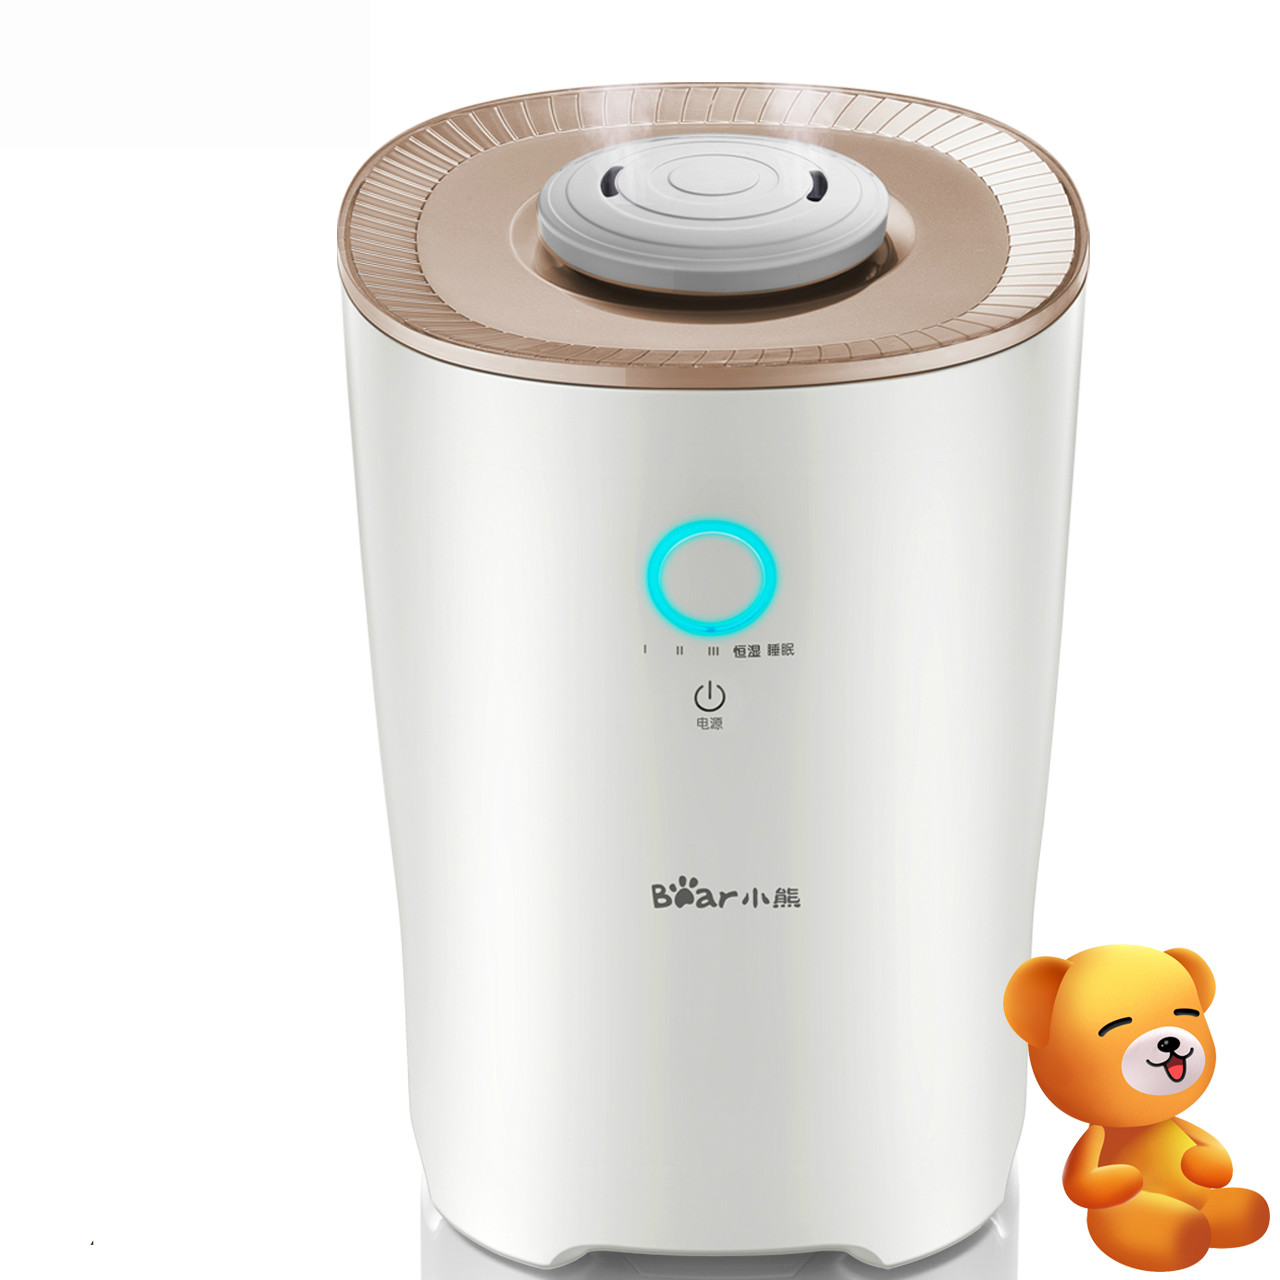 Bear Mini household air humidifier mute bedroom office large capacity and creative humidification aromatherapy machine Diffuser tabletop humidifier household bedroom mute high capacity office air conditioning creative air aromatherapy mist making machine